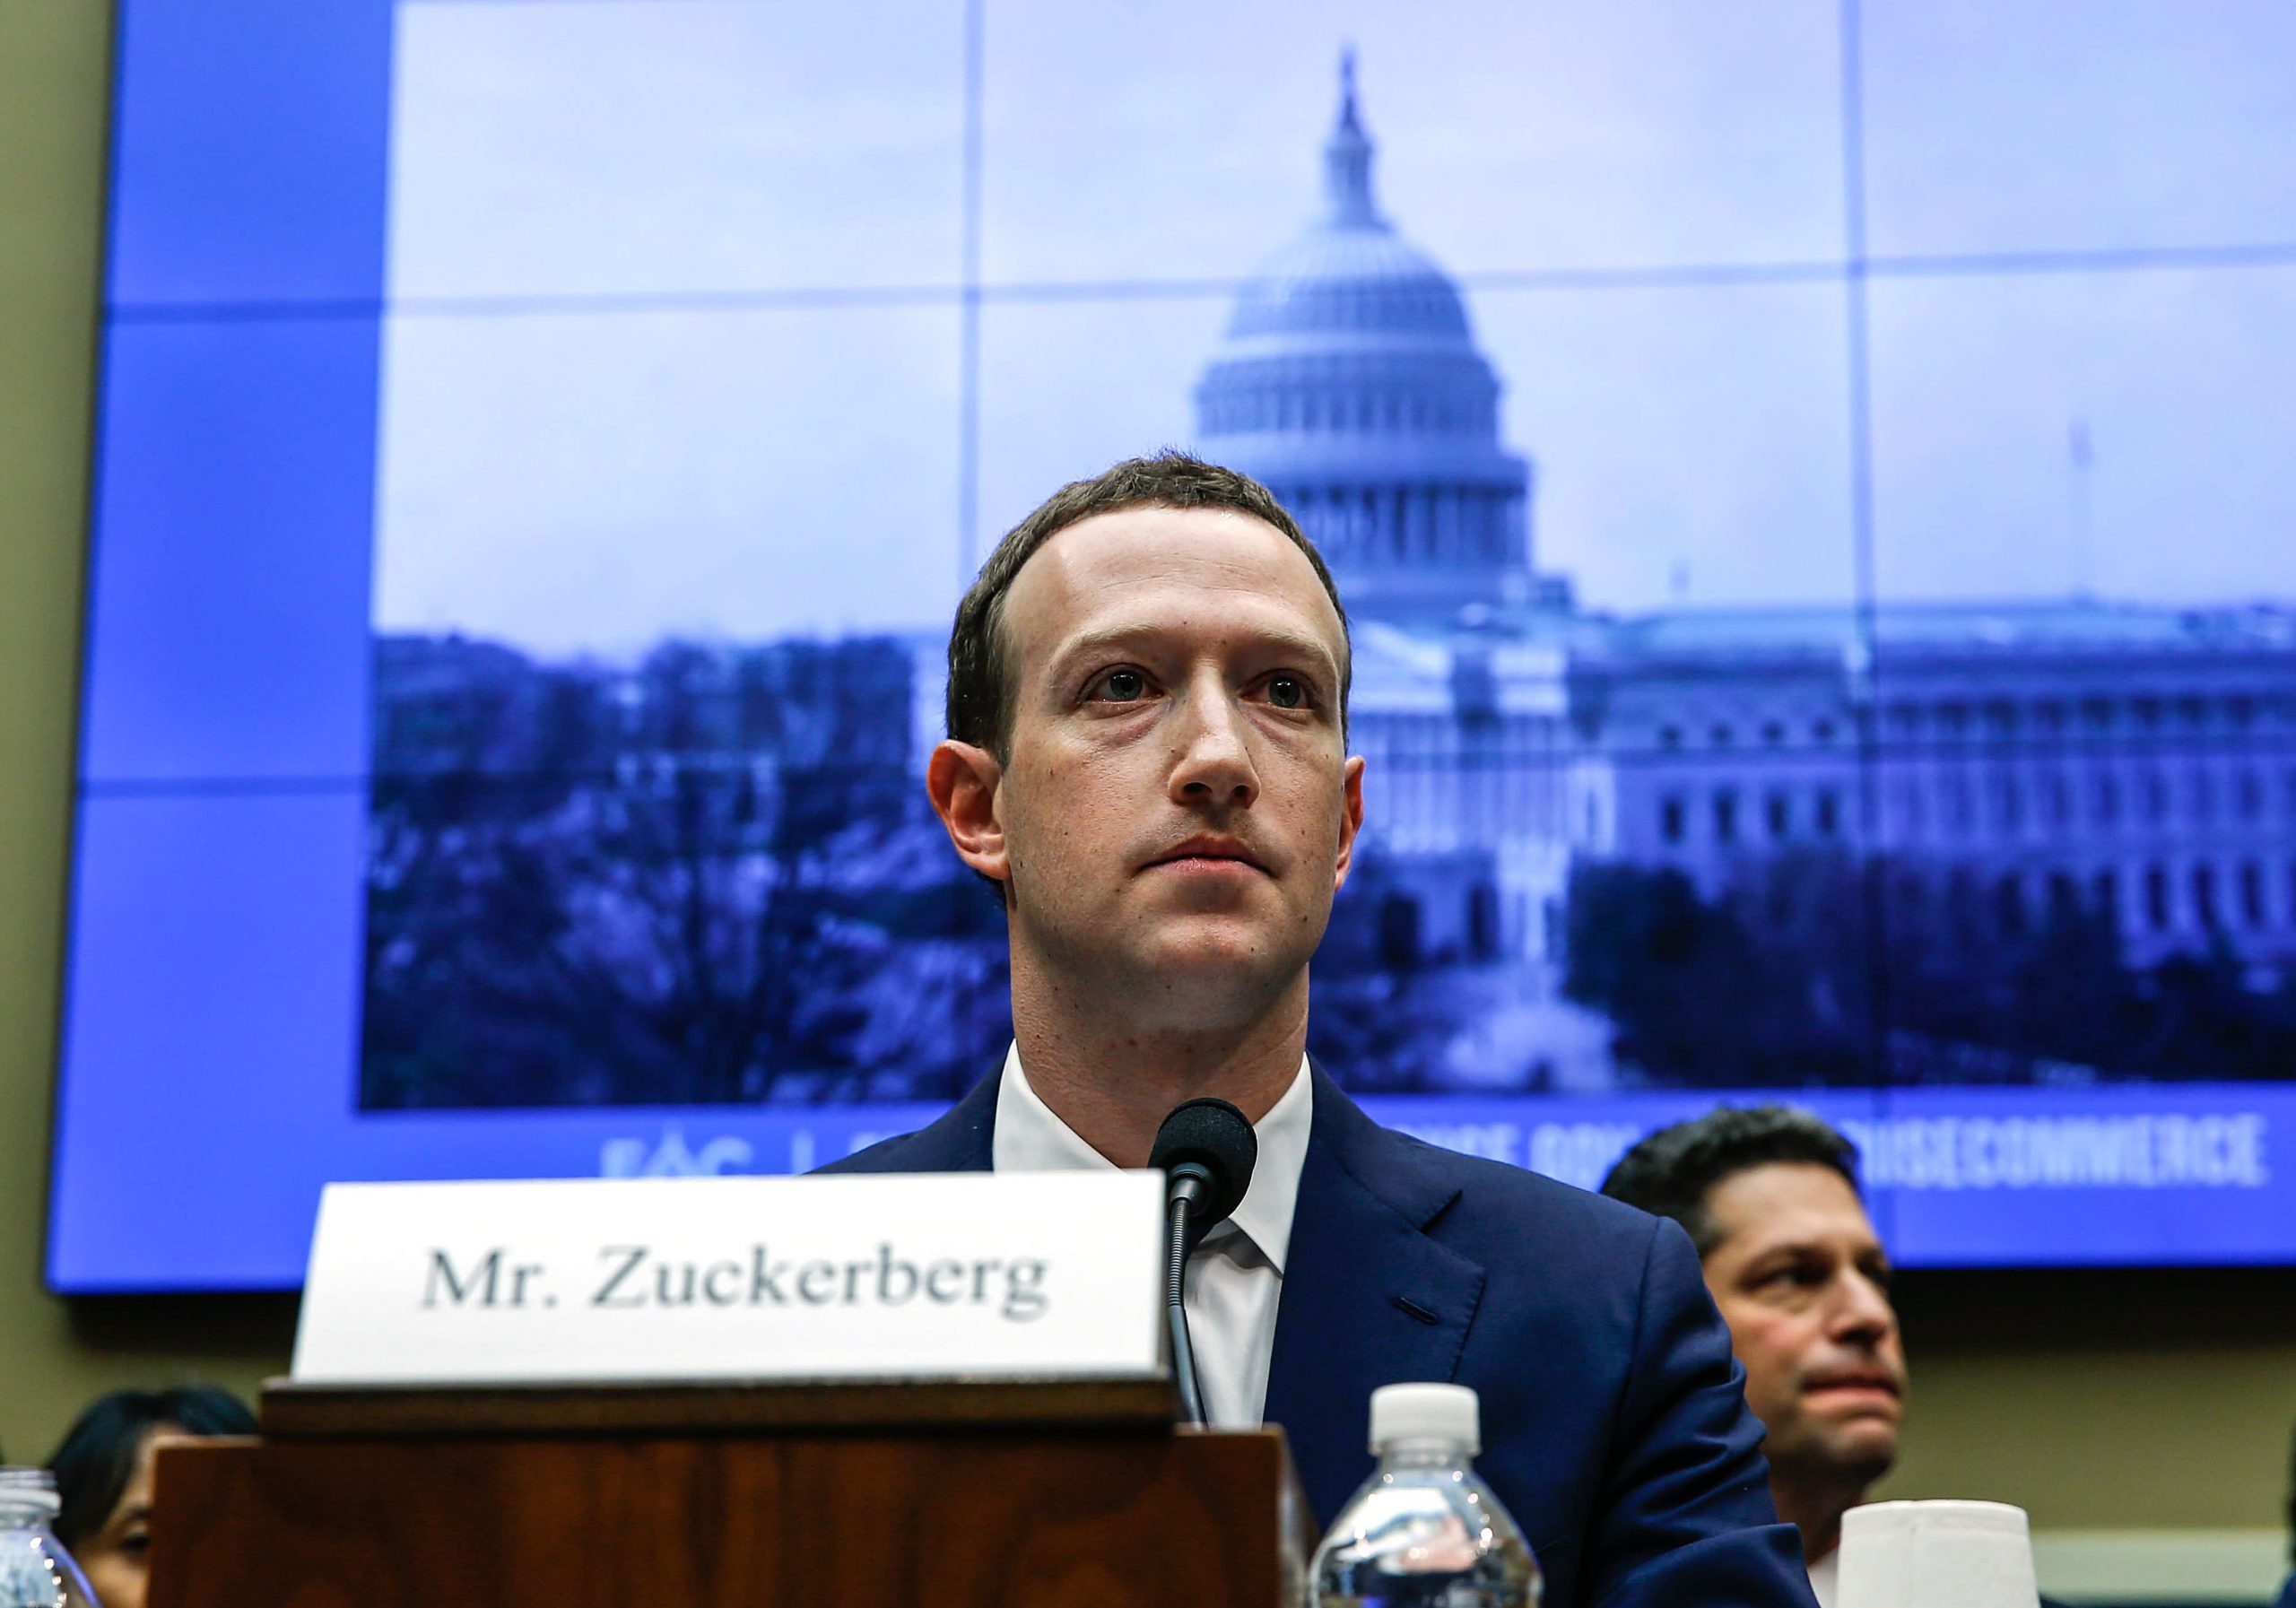 Facebook says it will let people see fewer political ads ahead of US election